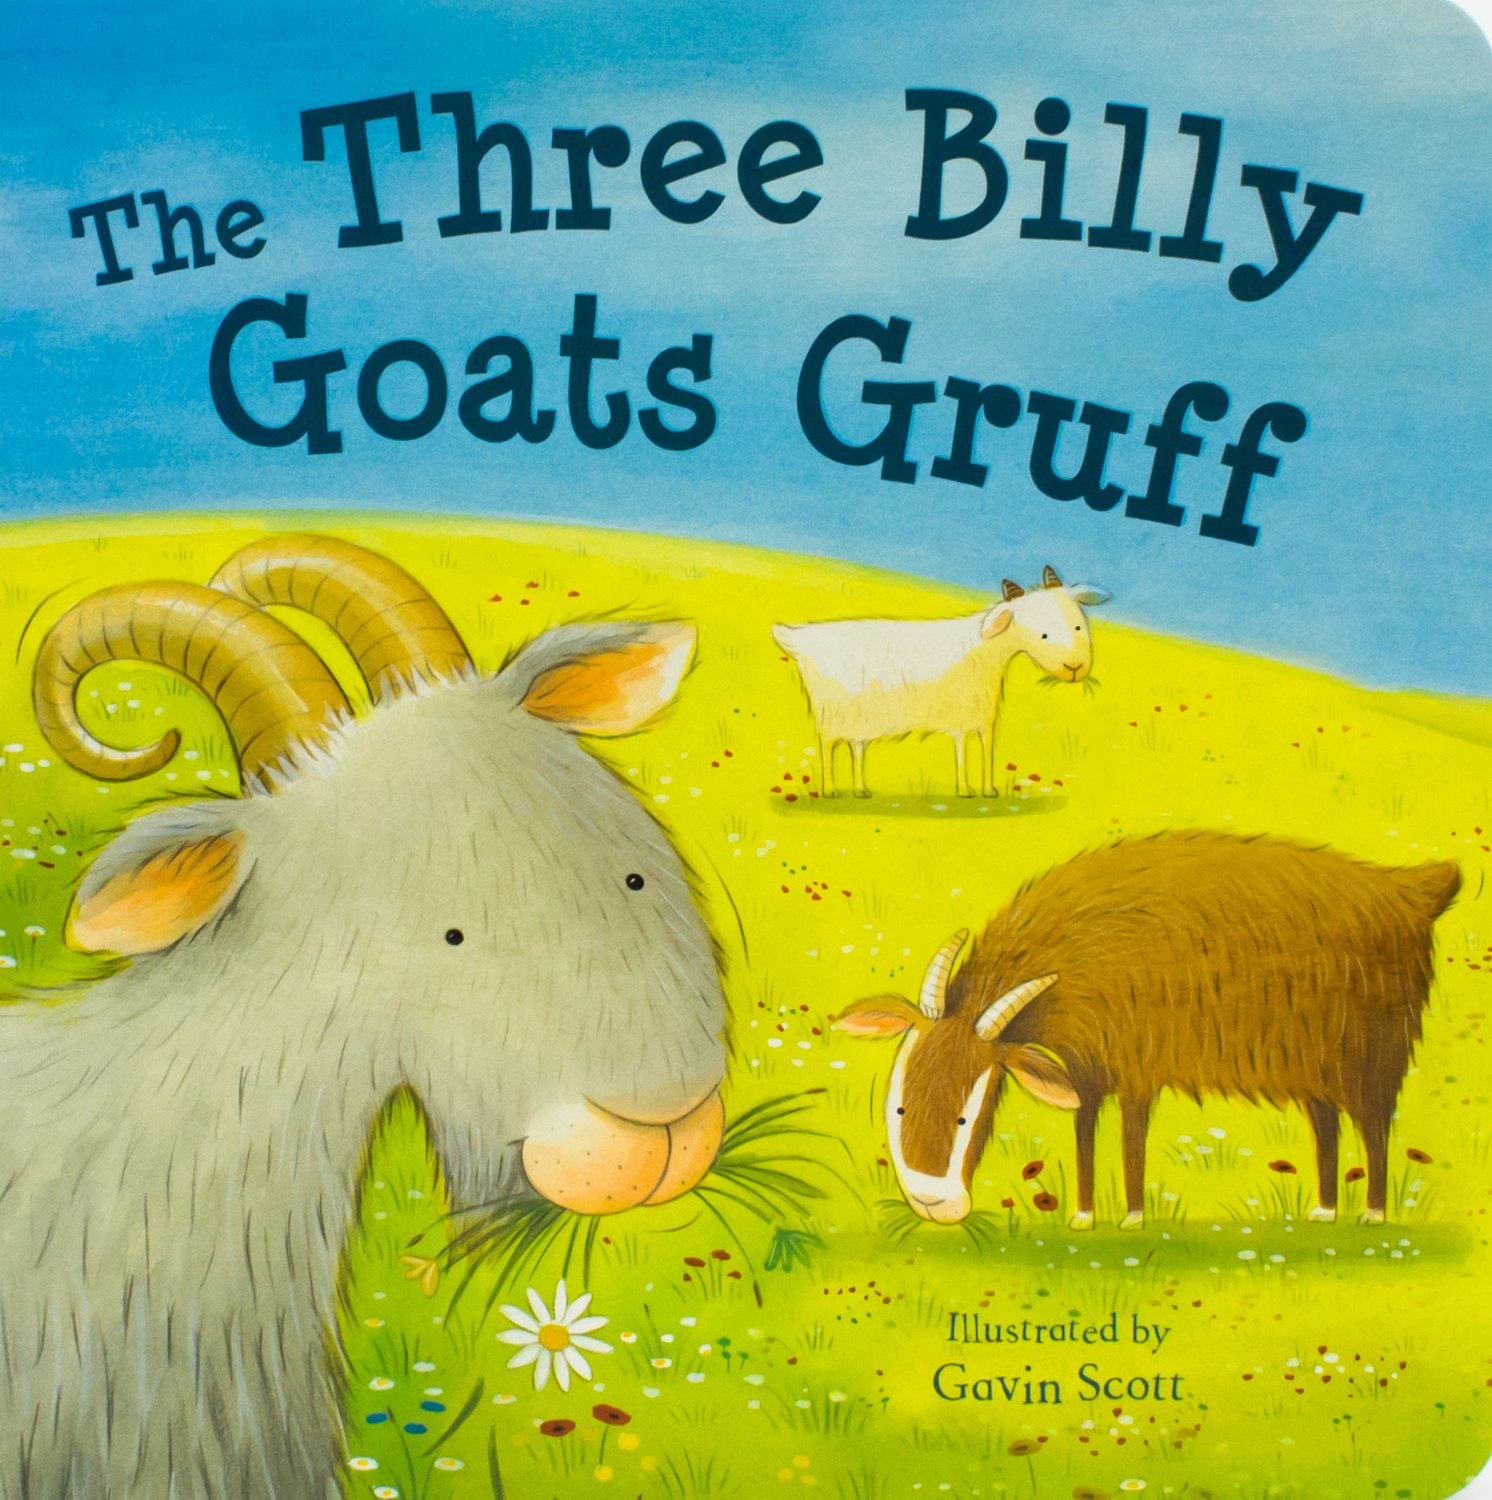 Worksheet The Three Billy Goats Gruff the three billy goats gruff fairytale boards parragon books 0824921051282 amazon com books